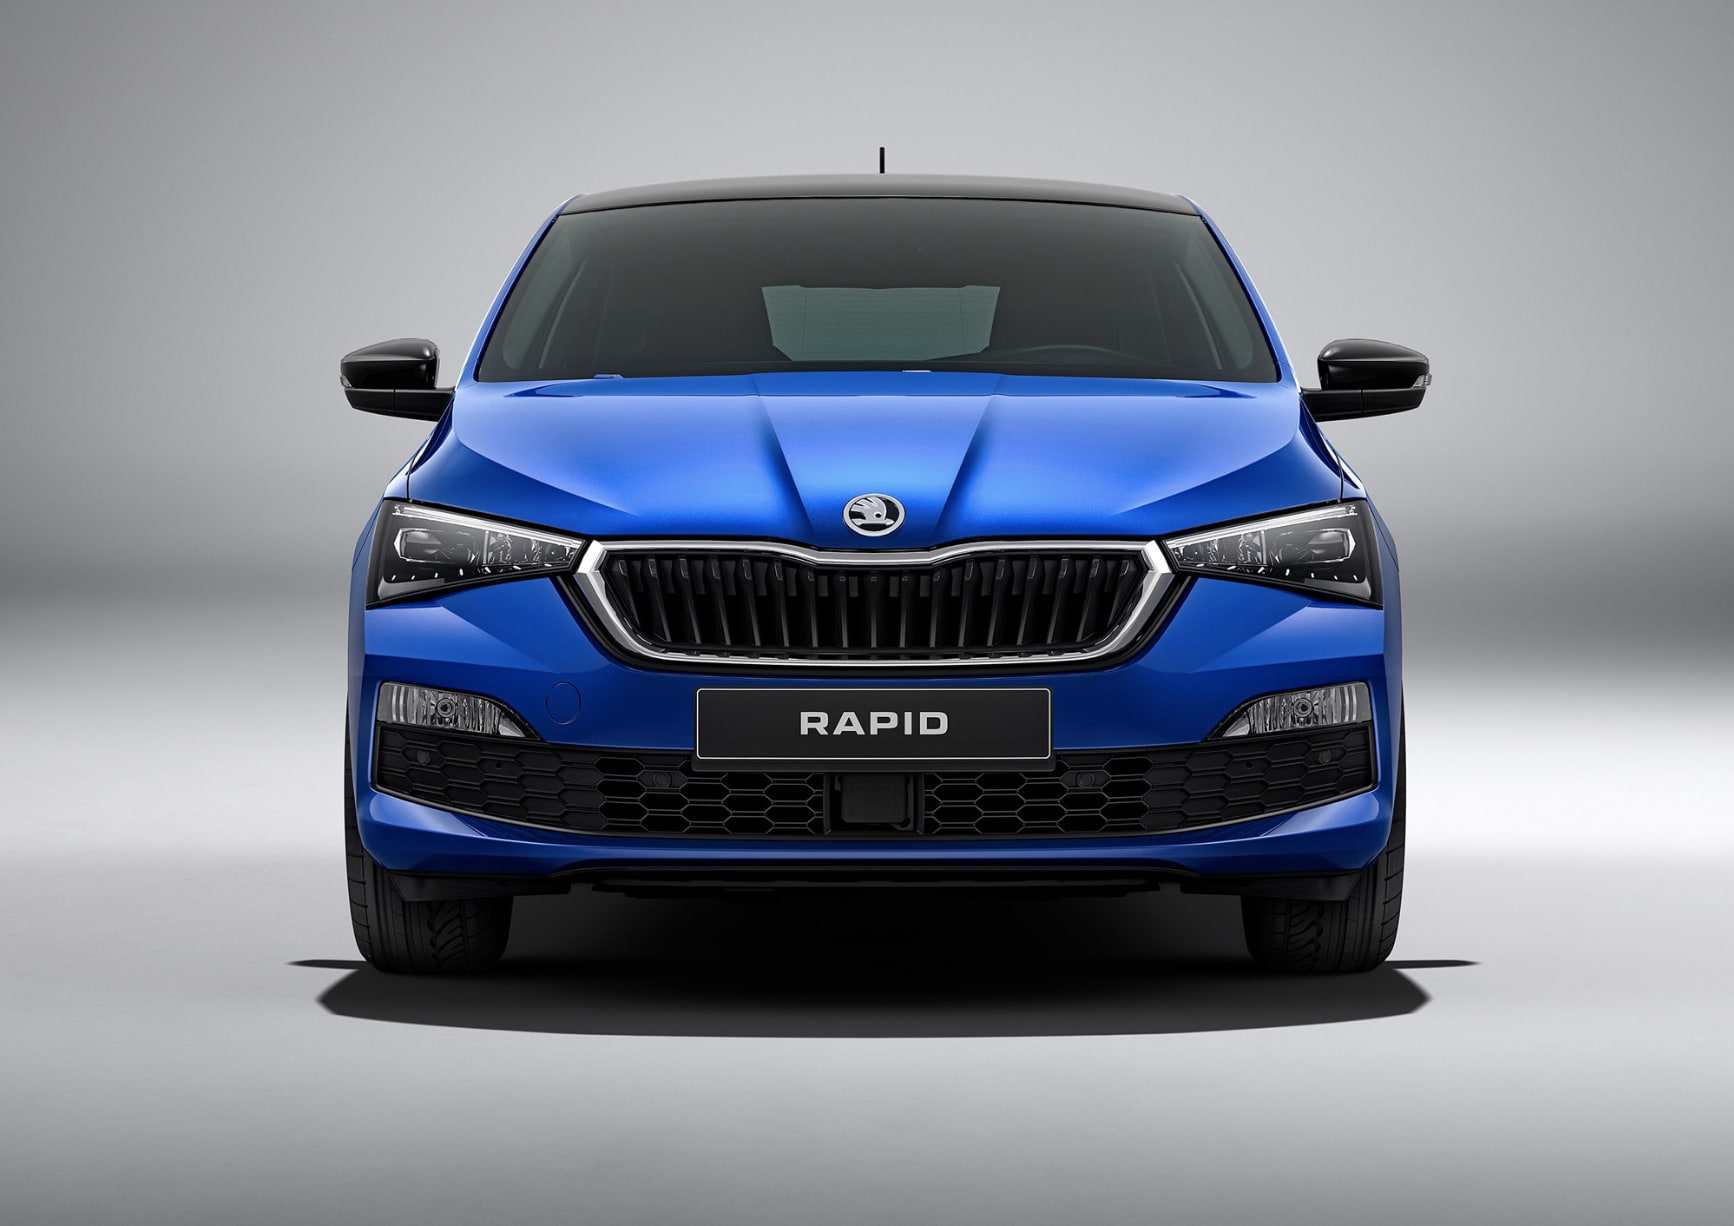 The front of the new Skoda Rapid now gets a distinct personality with sharply defined edges